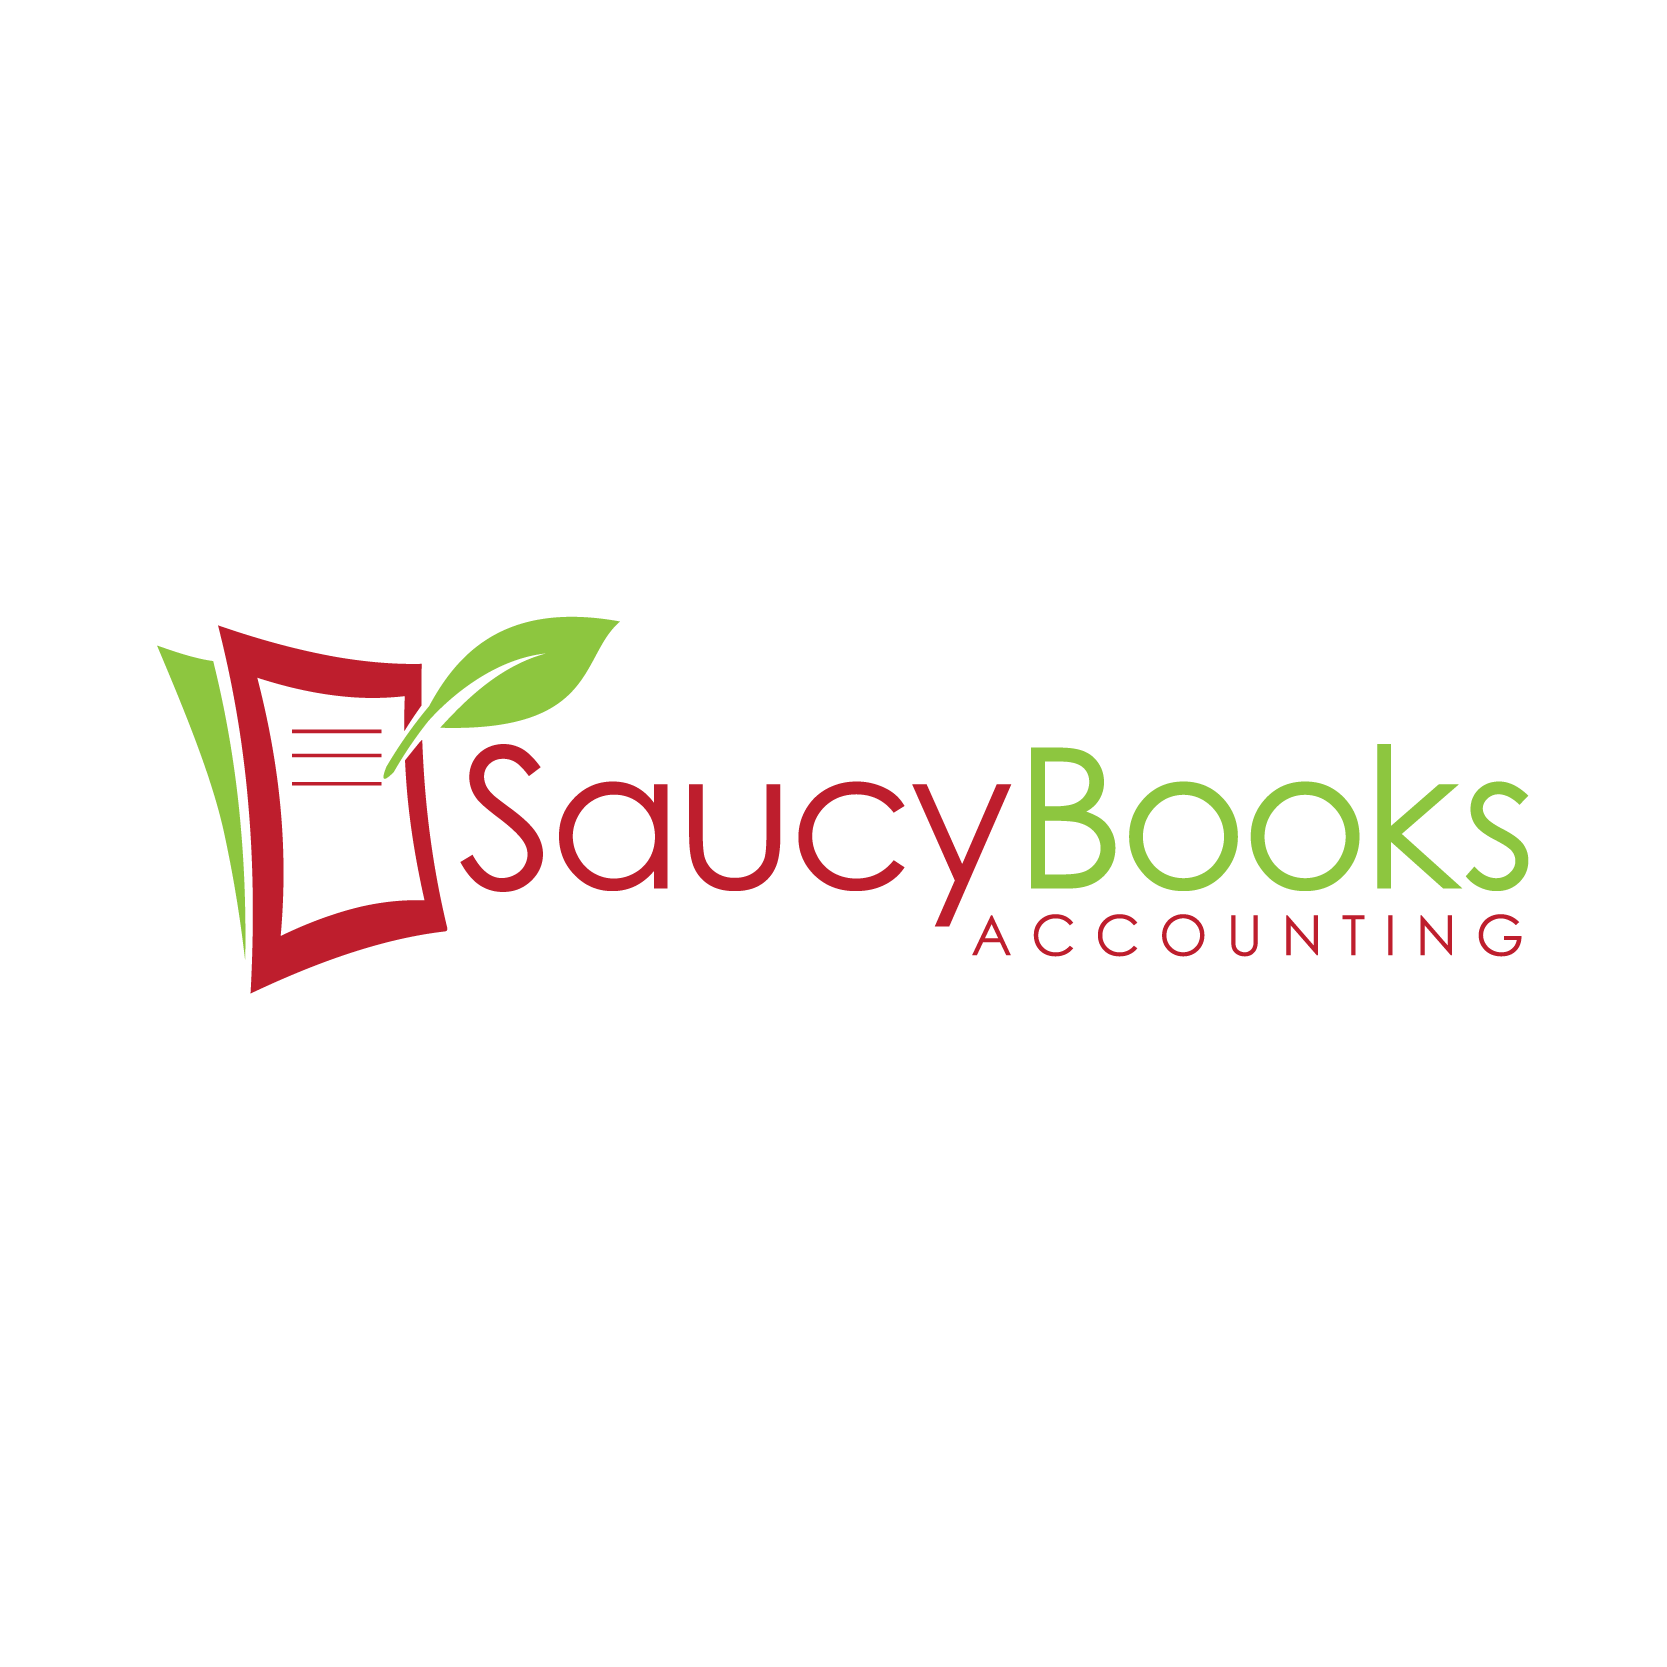 Create a logo for Saucy Books Accounting